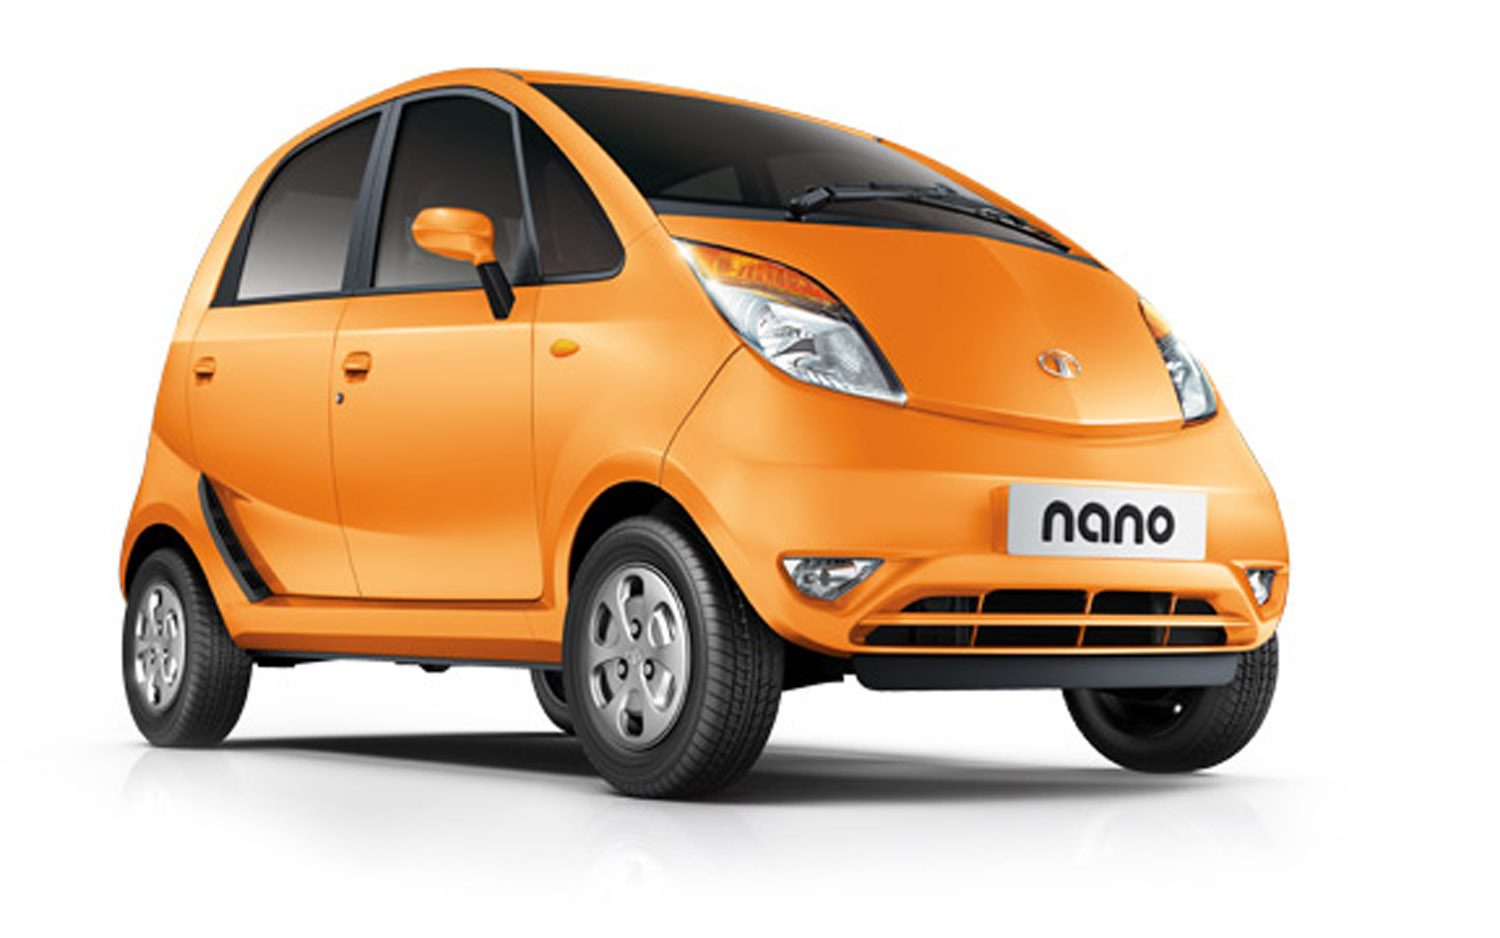 tata nano business plan Tata nano author: admin \ august 1, 2018 \ business papers \ 0 comments the majority of growth in the global automobile indus- try in the coming decade will come from emerging economies such as india, china and eastern europe, and the largest contribution to growth of auto markets in these countries will be the fast- growing small car segment.